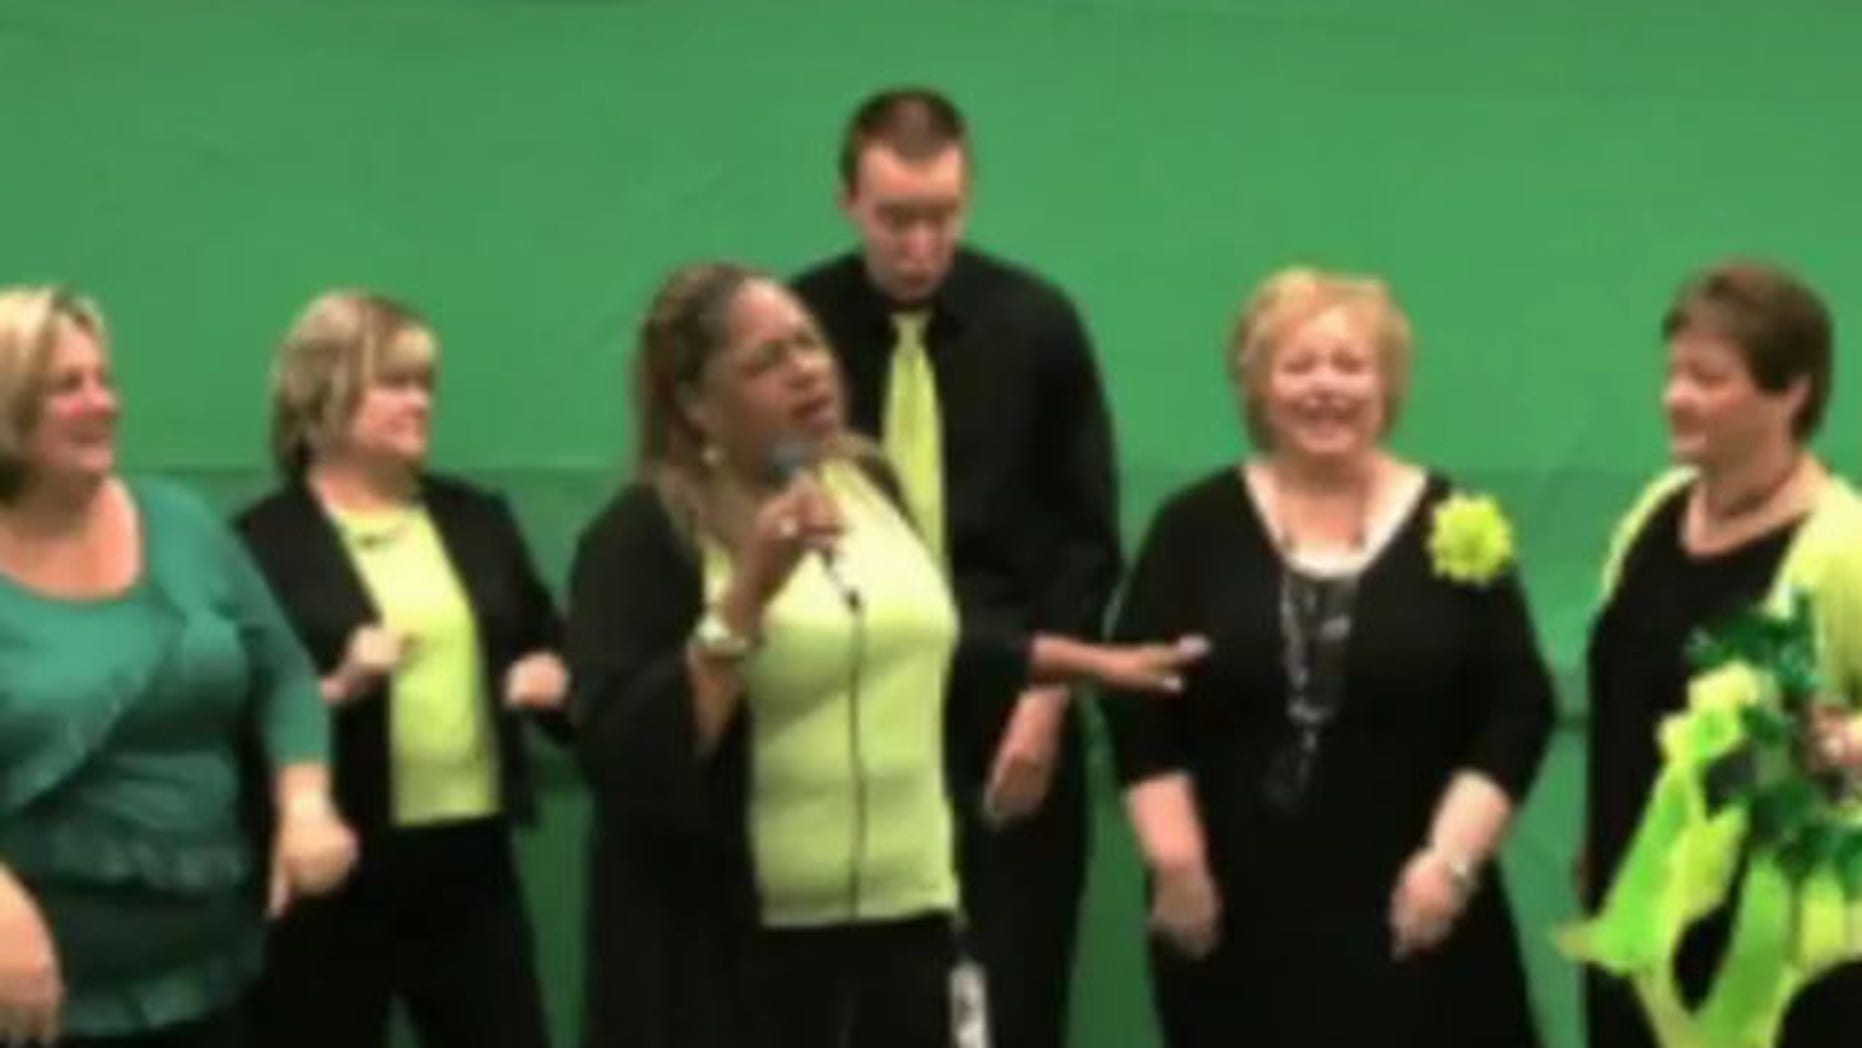 Shown here is an image from one of the mock music videos made for a General Services Administration conference in 2010.